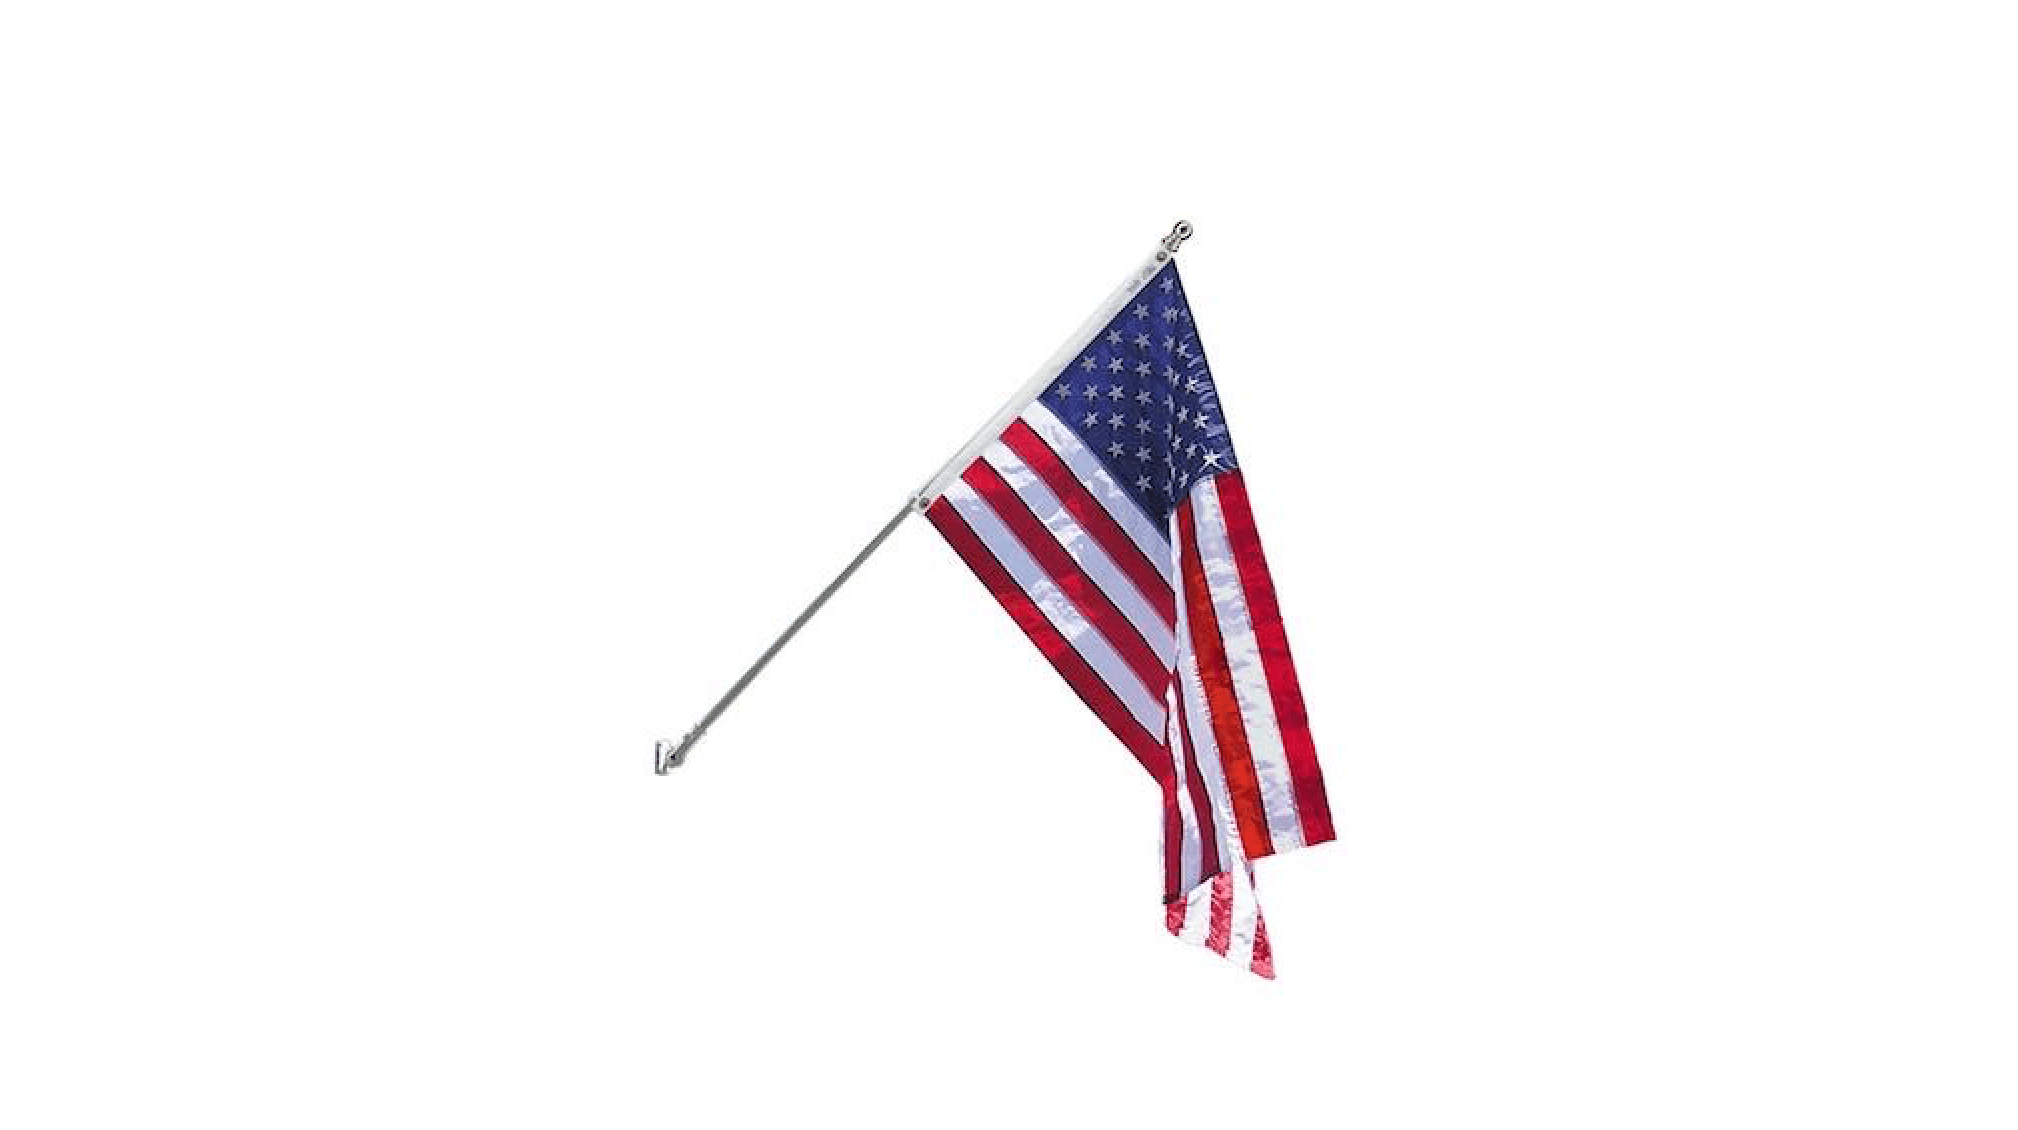 For Valley Forge Flag 1-Inch Diameter Rotating Mounting Rings 2-Piece CA